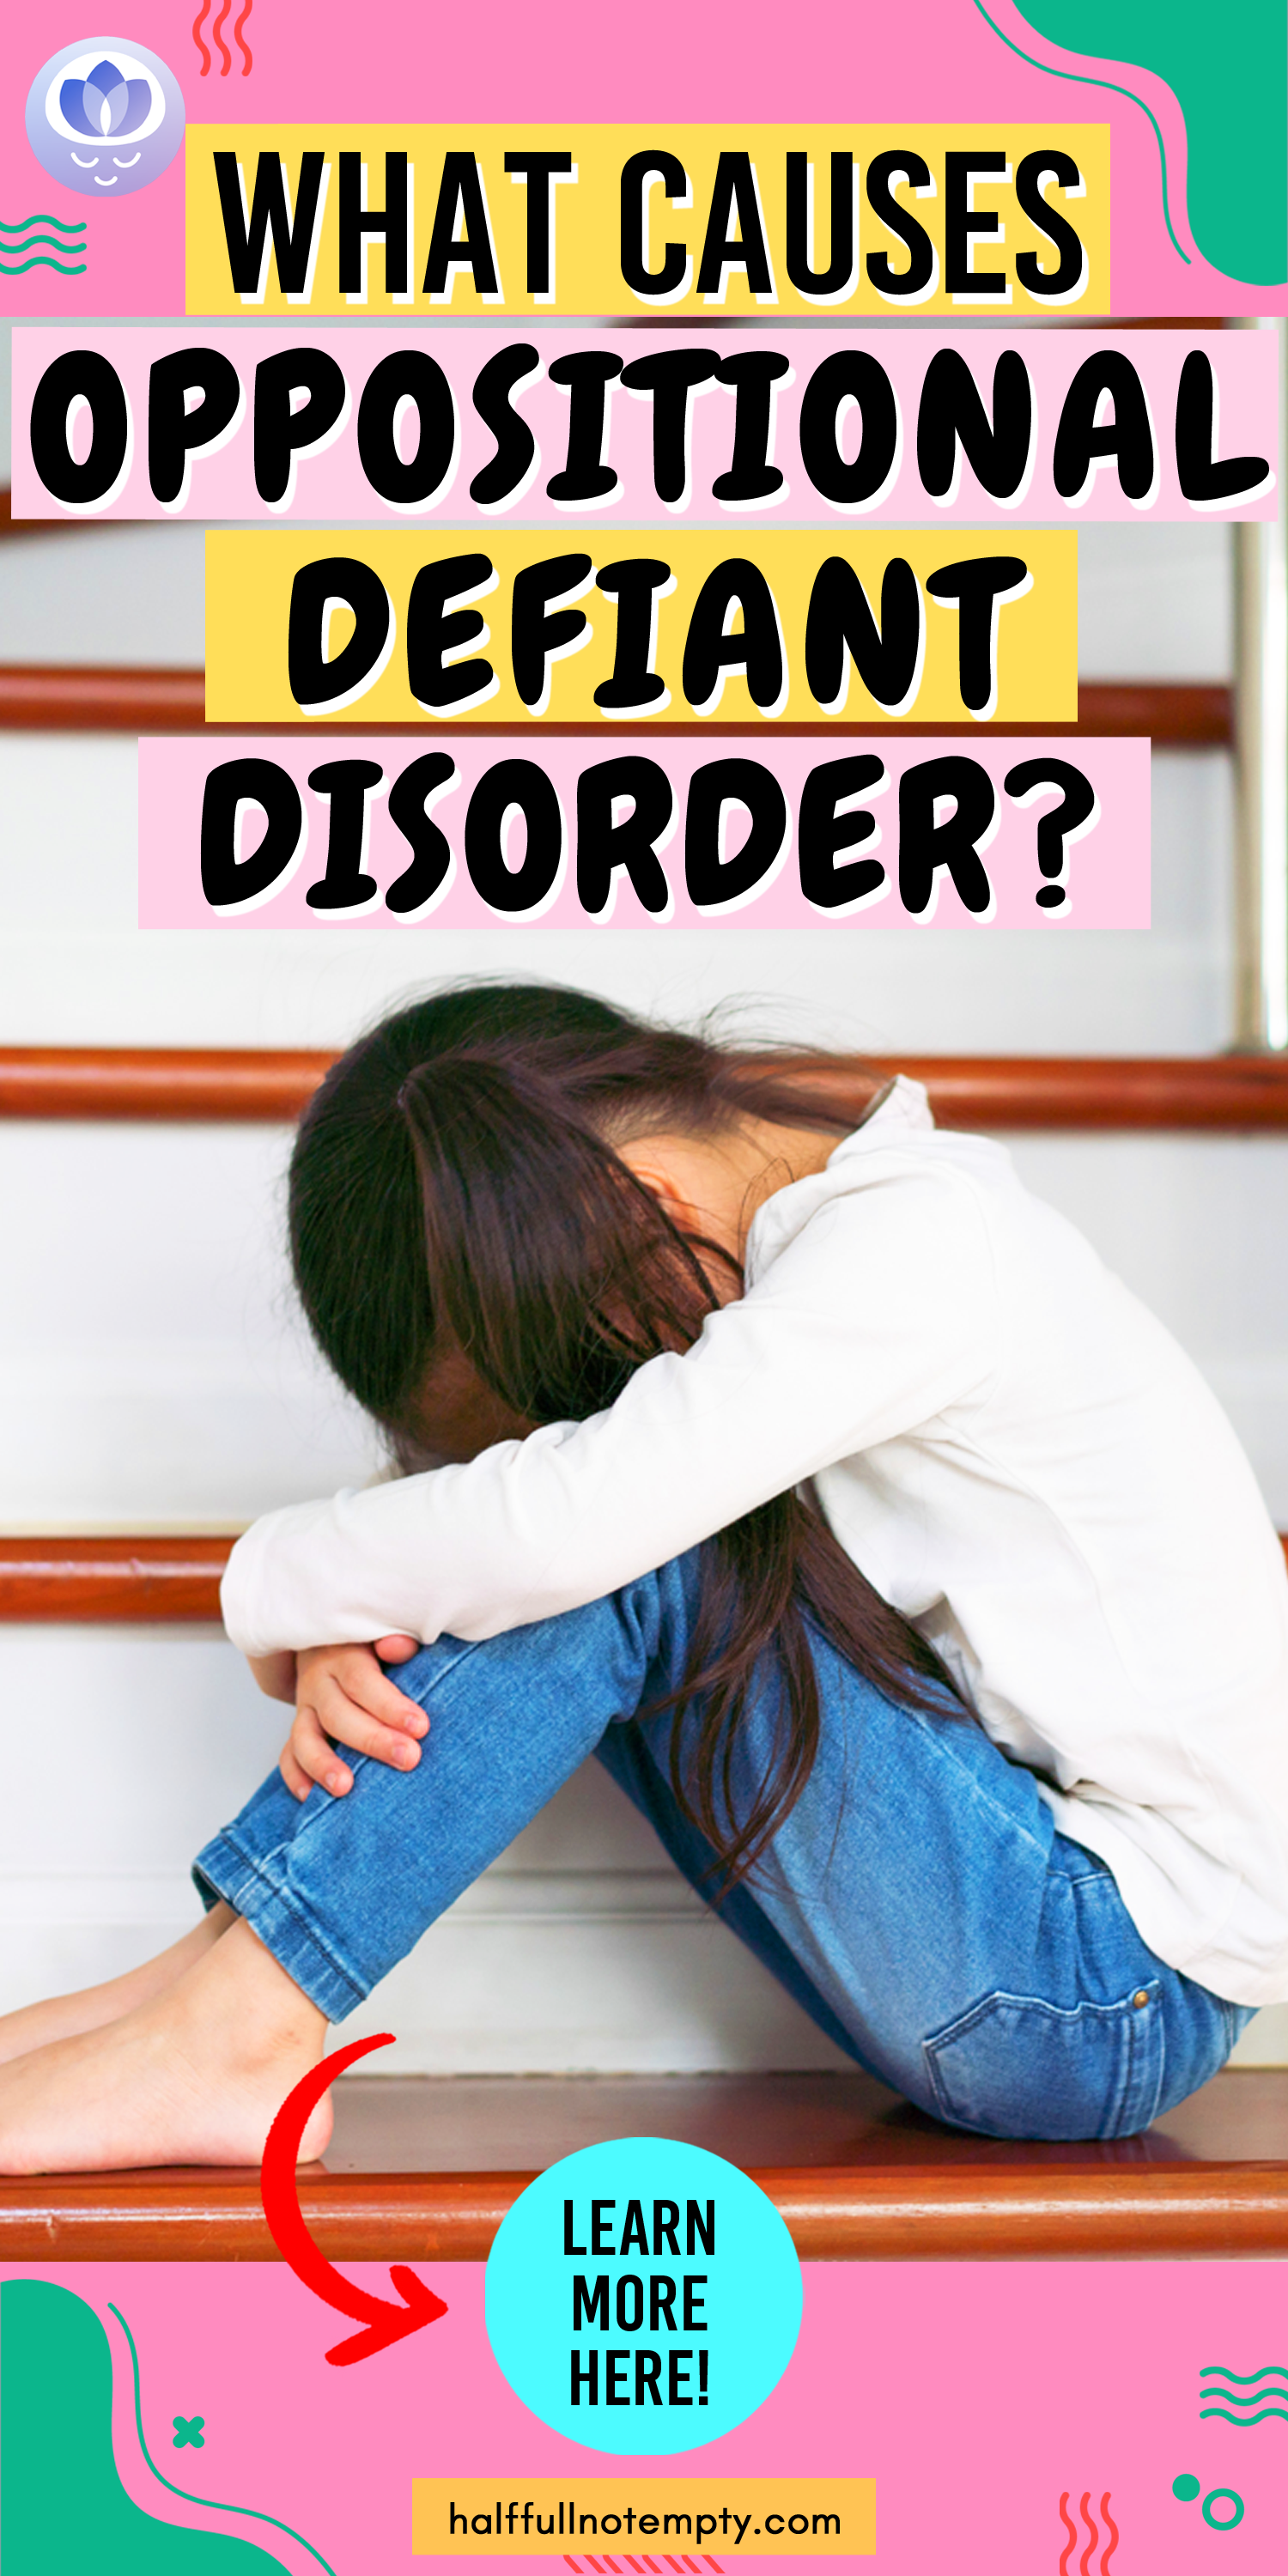 What Causes Oppositional Defiant Disorder In